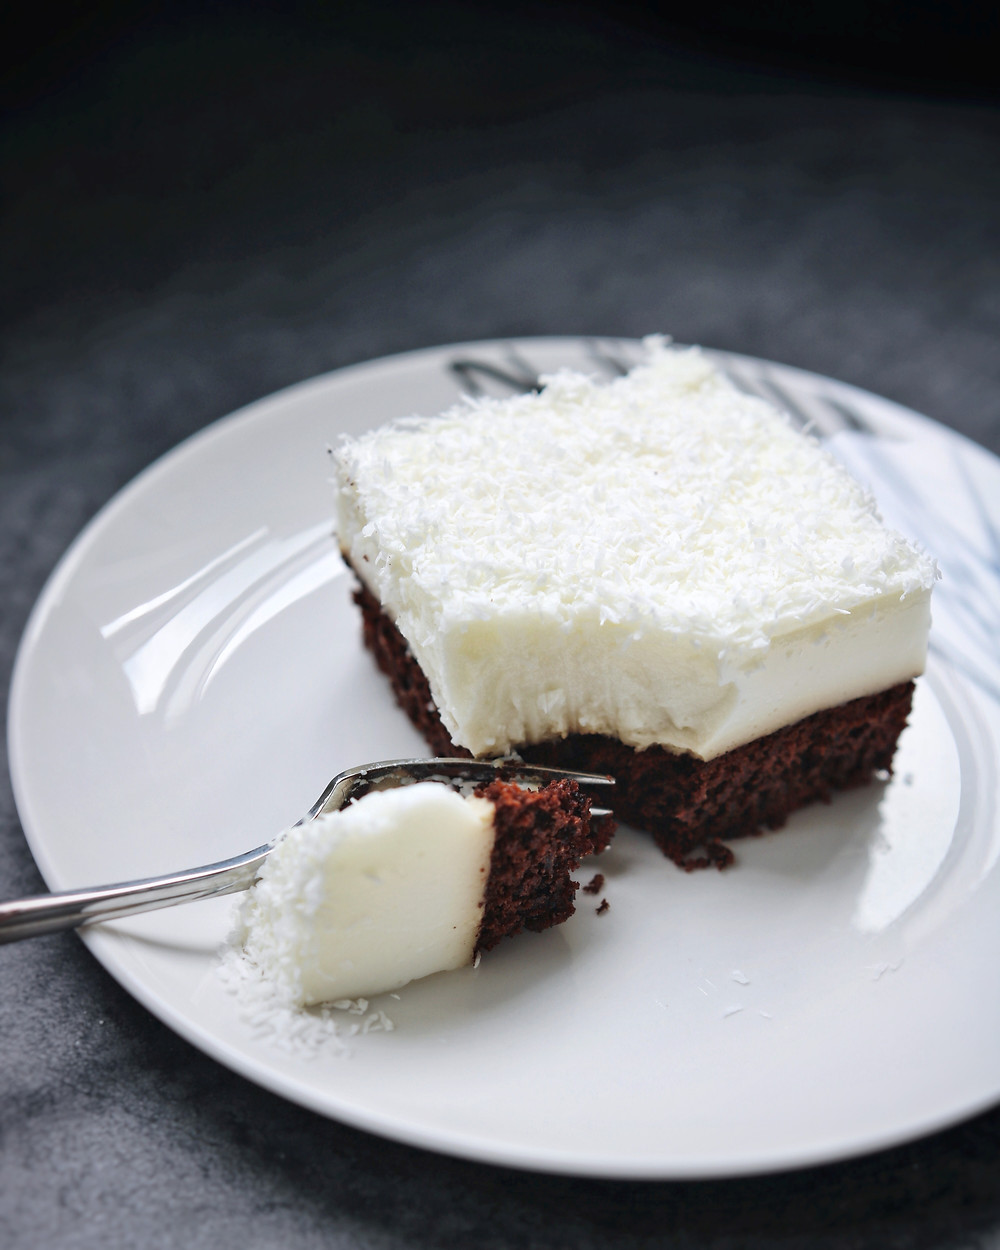 A fork takes out a bite of the gluten free coconut and chocolate cake bar.